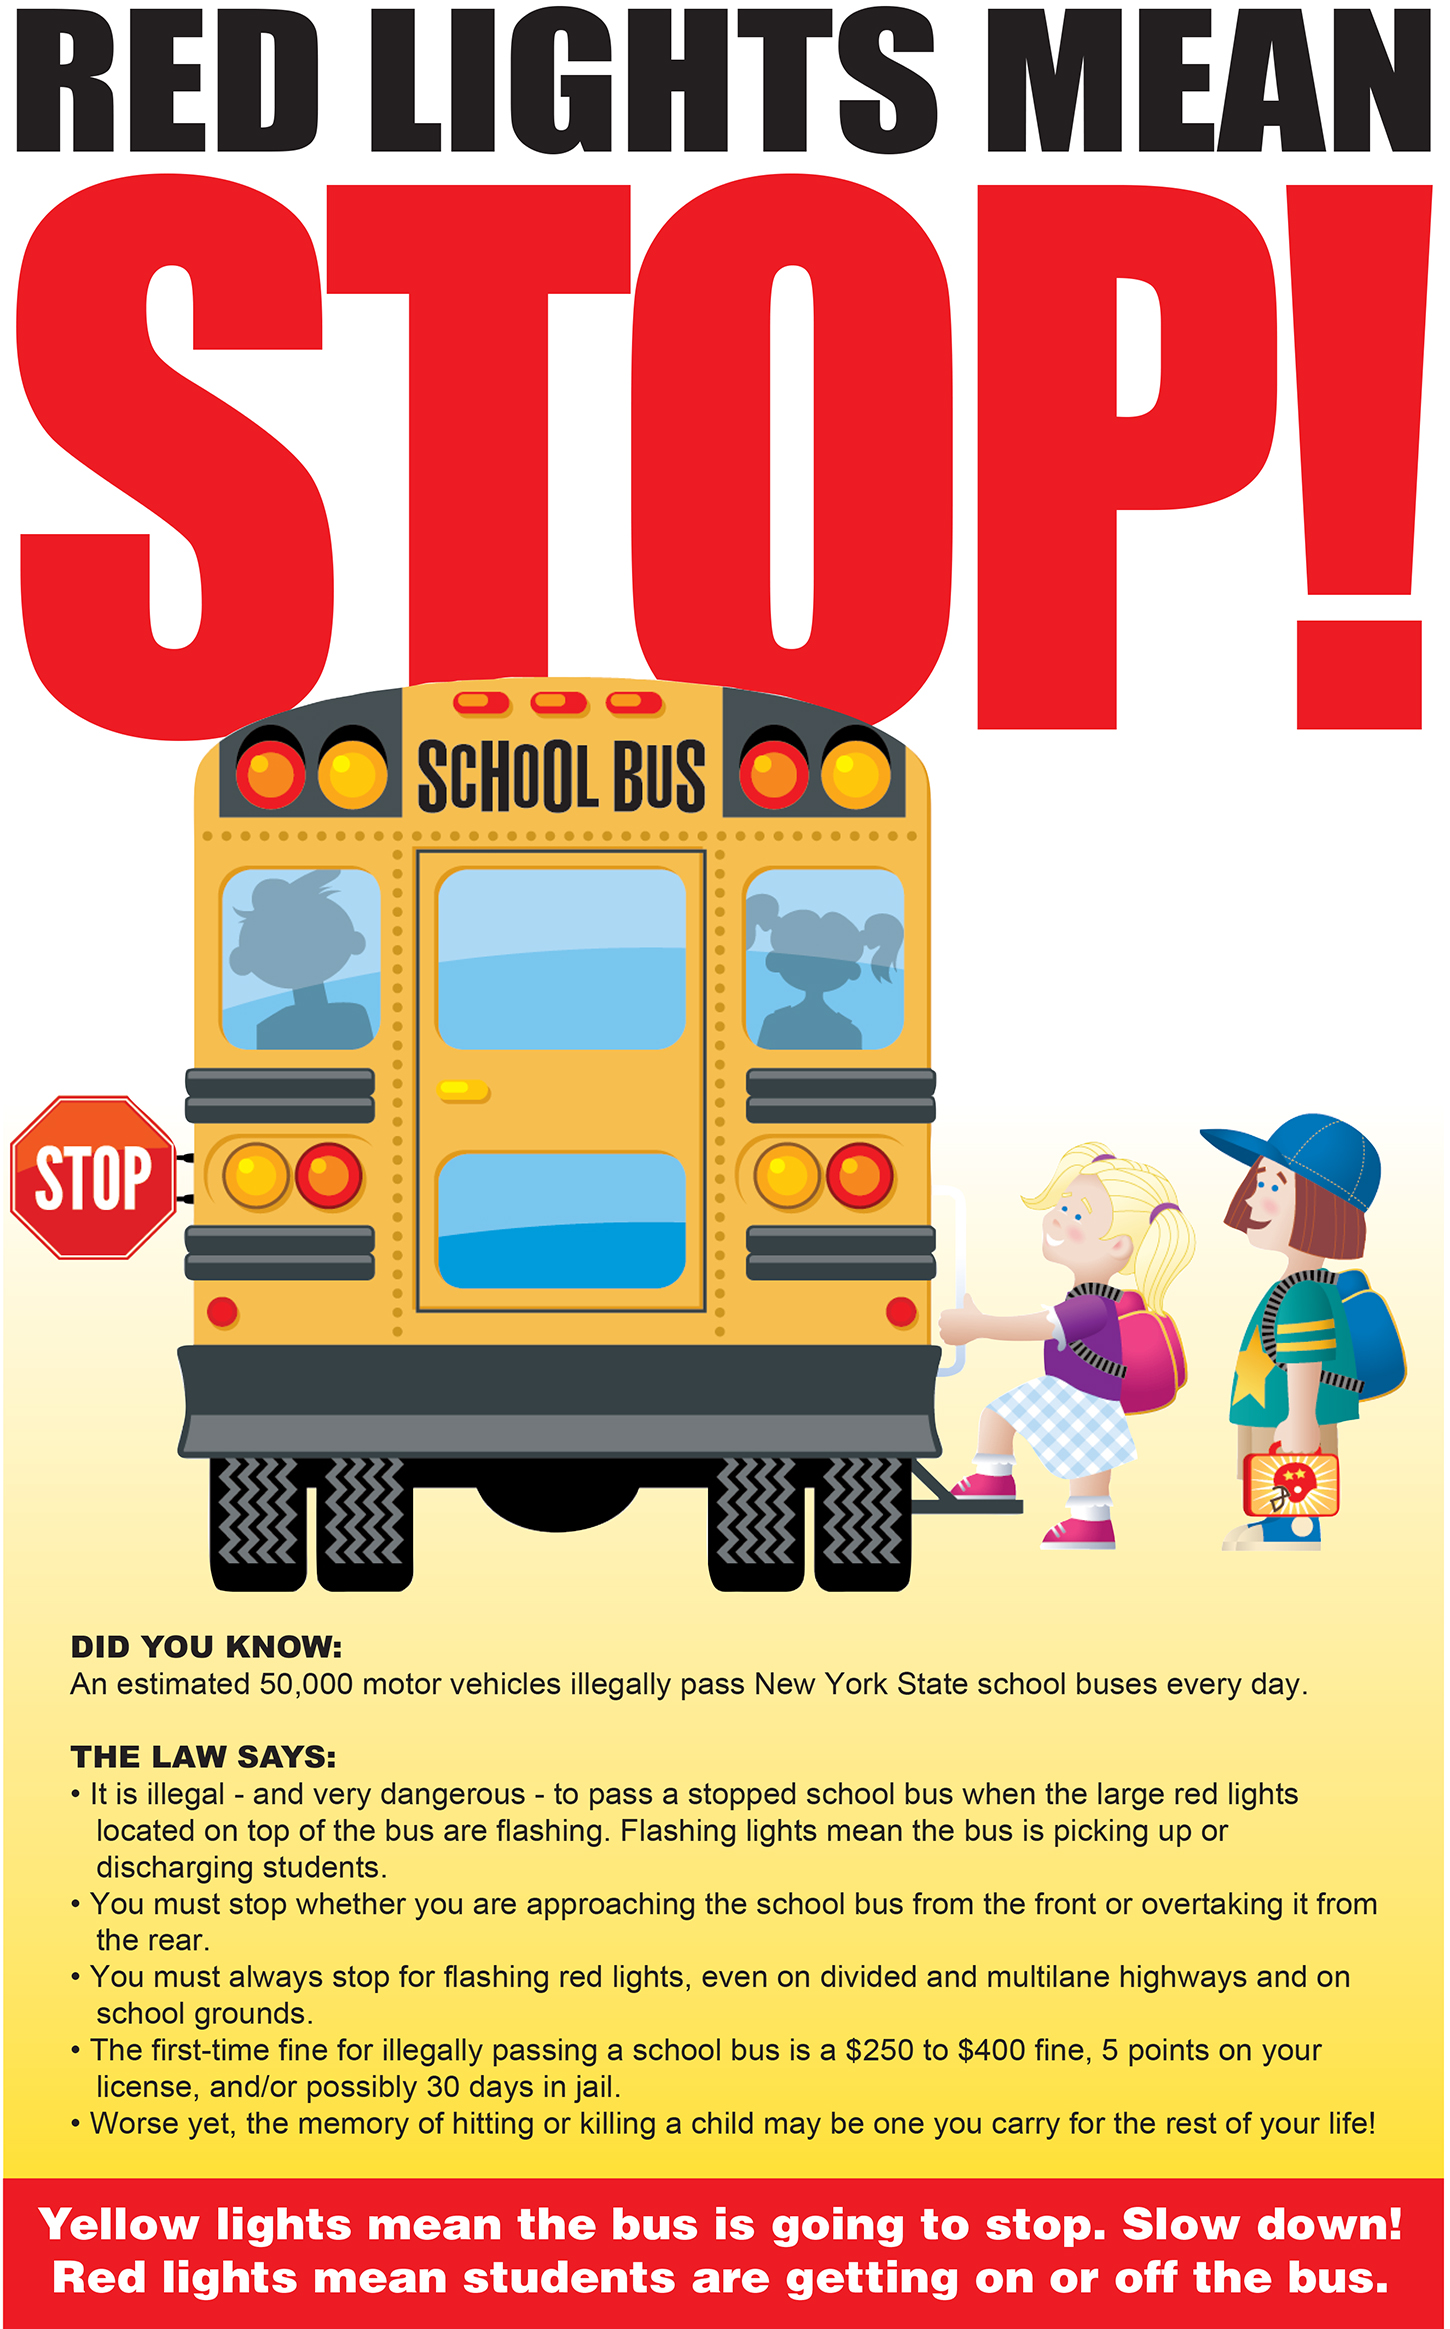 Red Lights Mean Stop! flyer (10/2021)